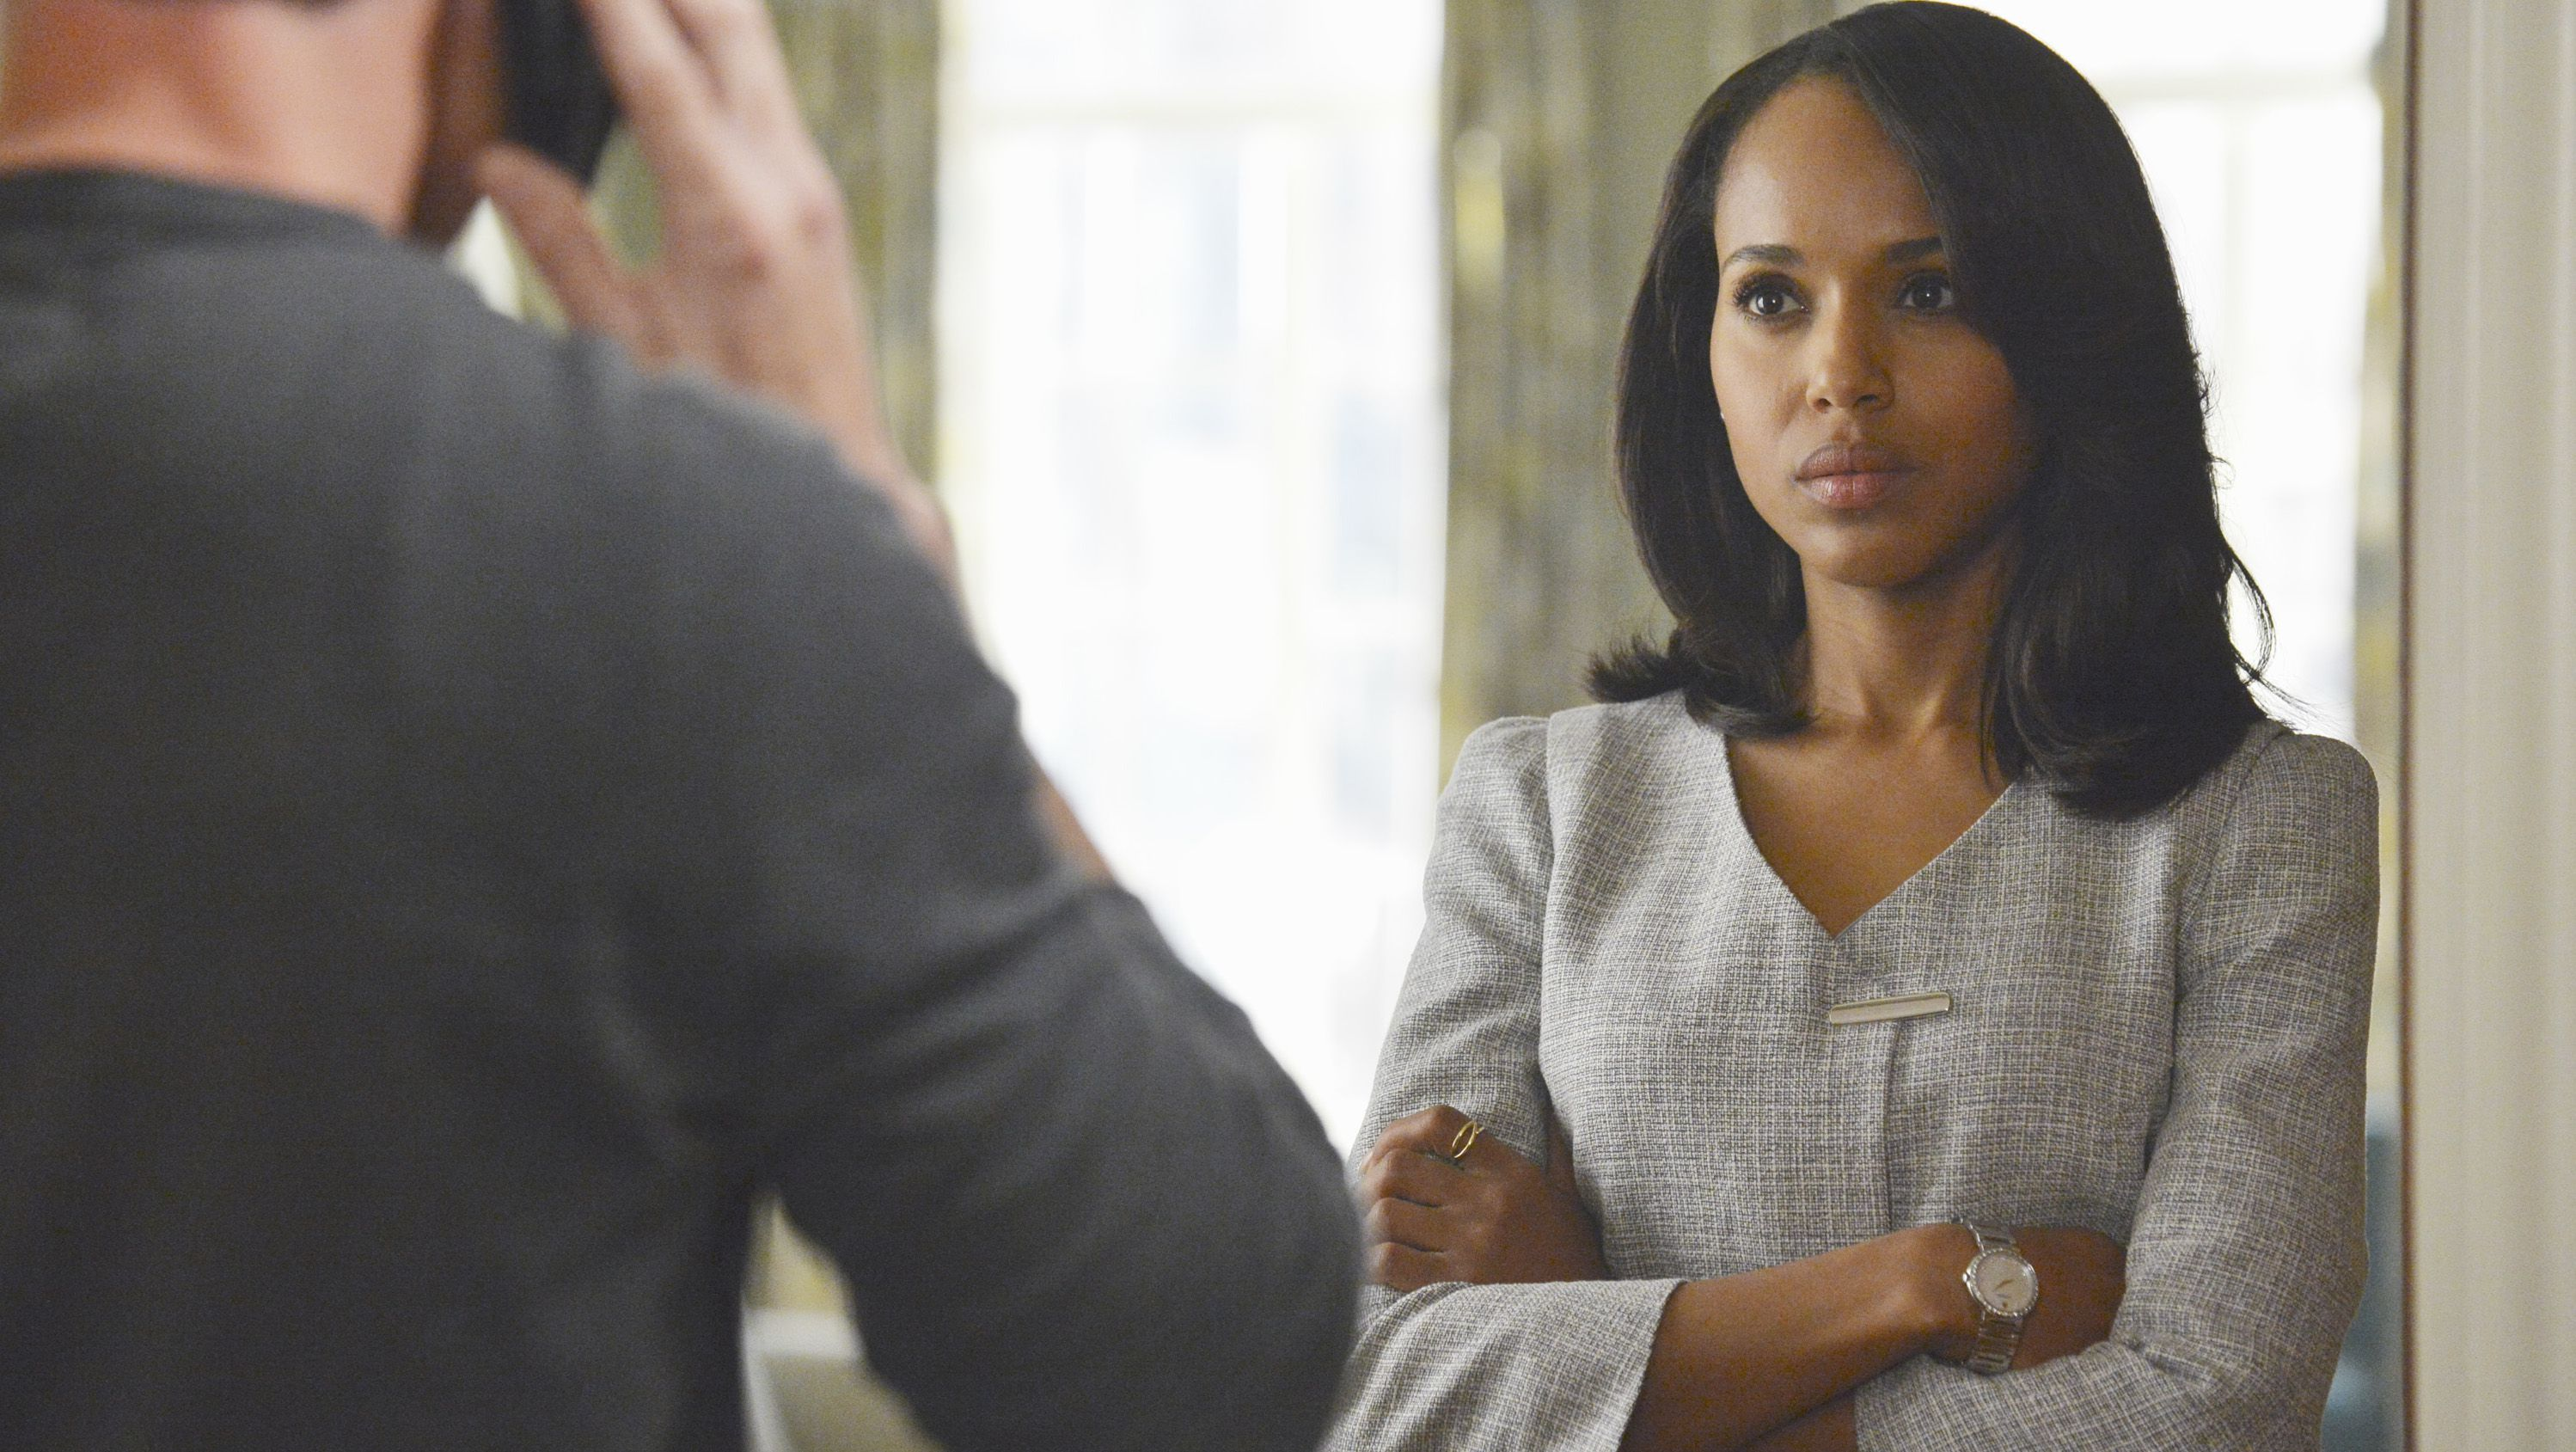 "This publicity image released by ABC shows Kerry Washington is in scene from ""Scandal."" Washington was nominated for a Golden Globe for best actress in a drama series for her role as Olivia Pope on Thursday, Dec. 12, 2013.  The 71st annual Golden Globes will air on Sunday, Jan. 12. (AP Photo/ABC, Eric McCandless)"